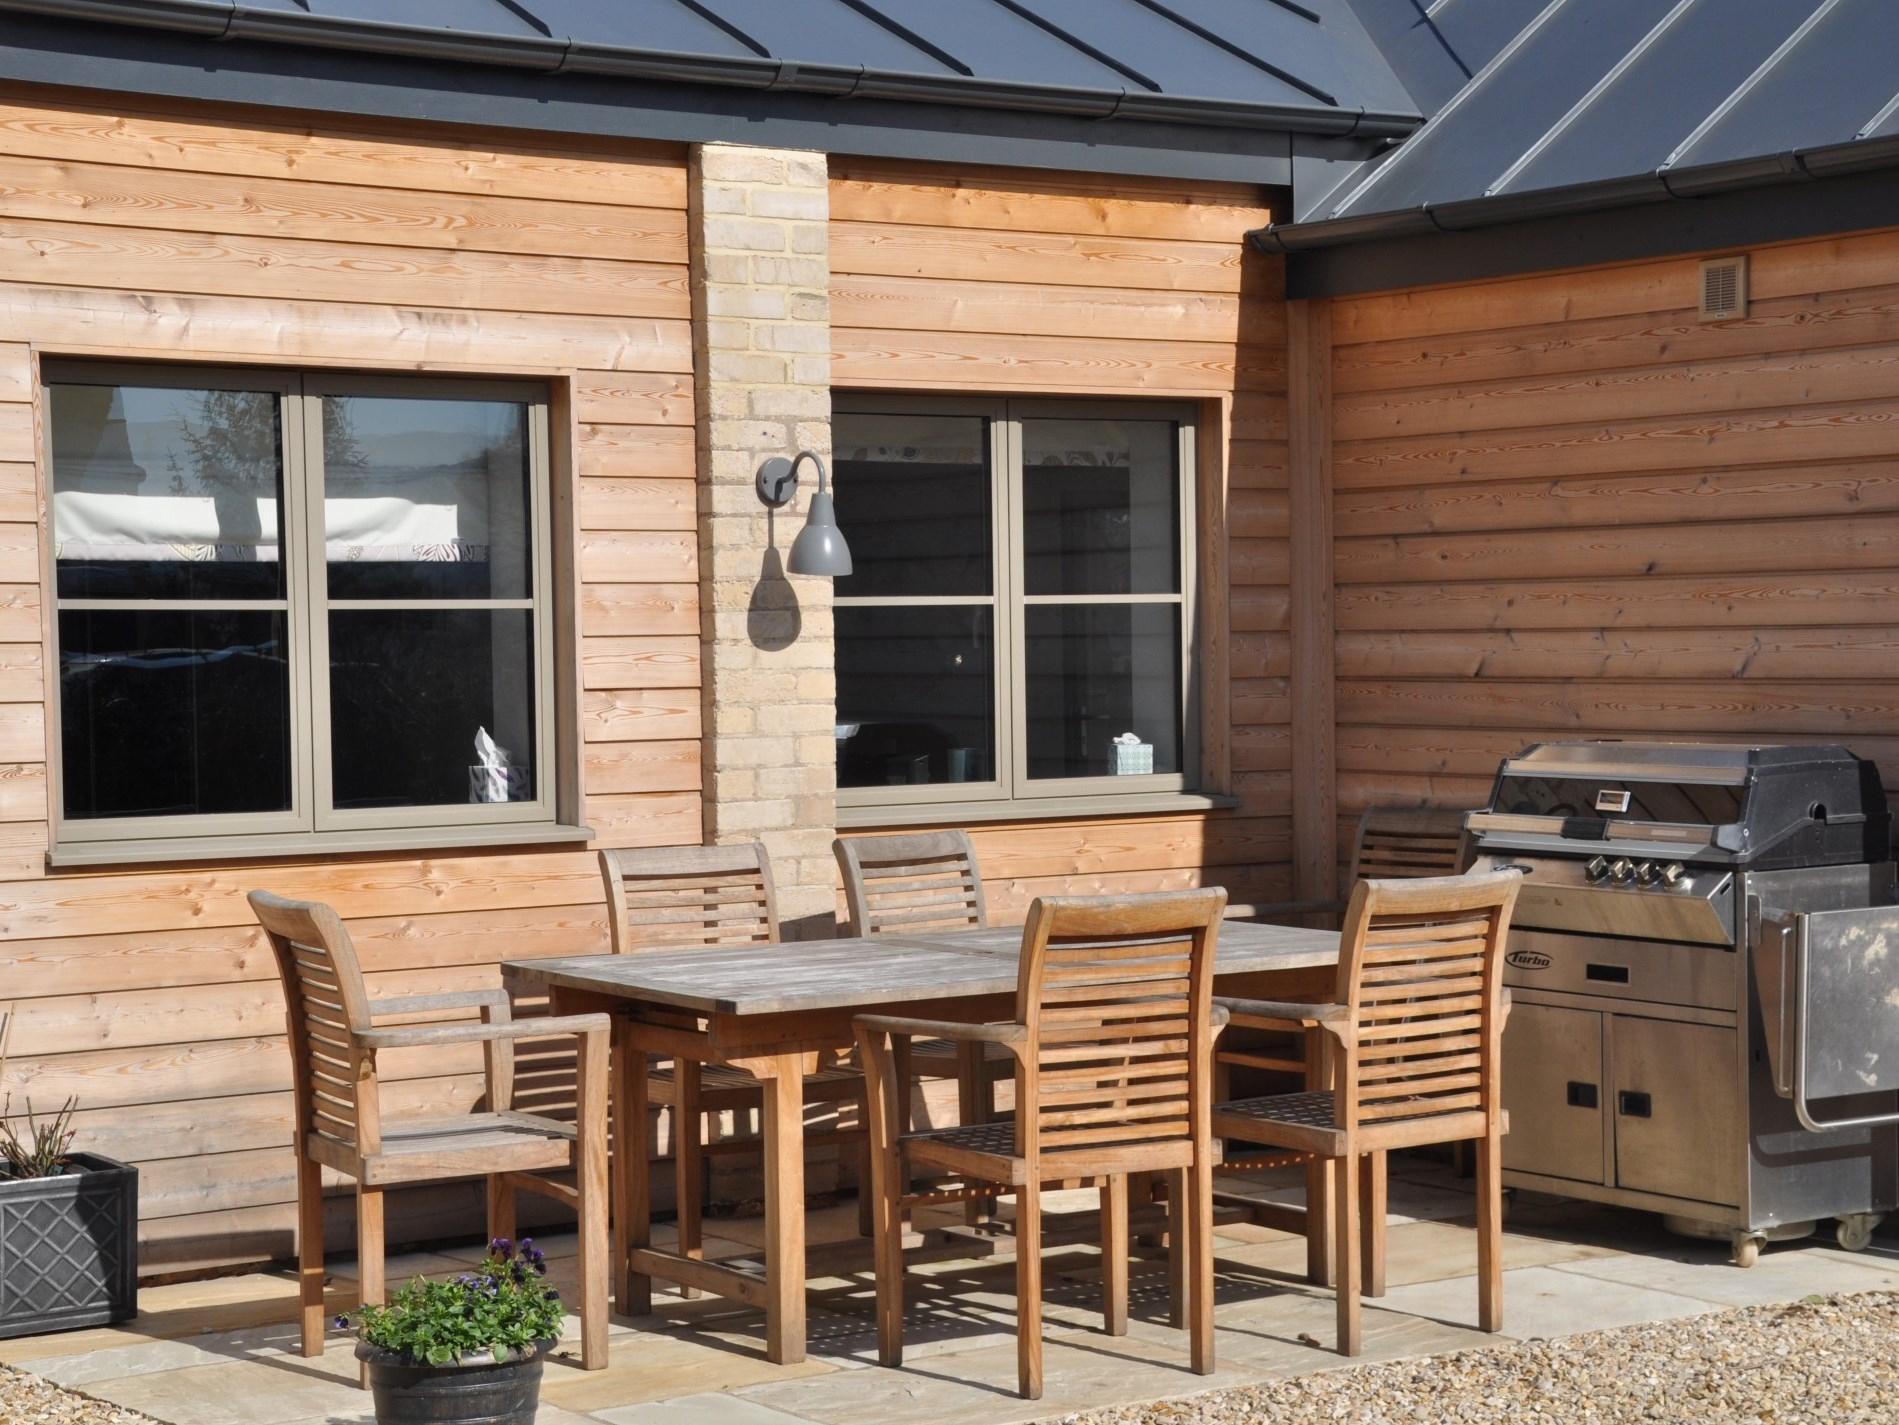 A great space for dining alfresco